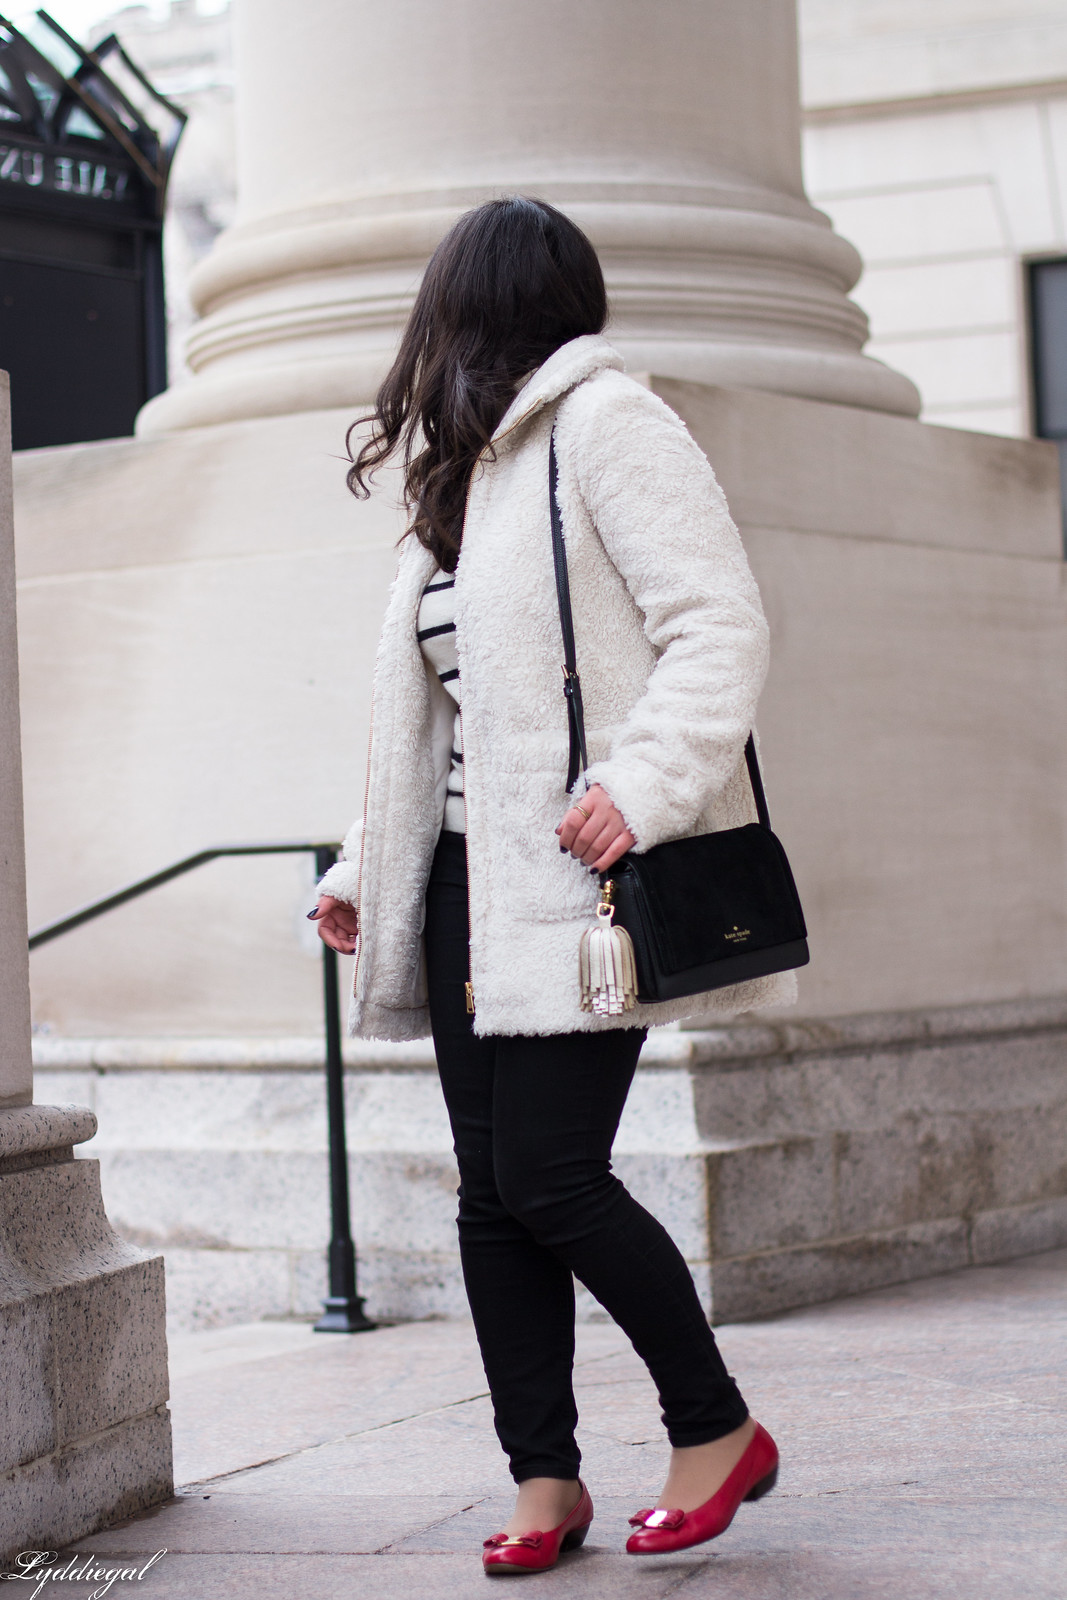 loft teddy bear coat, striped sweater, black jeans, red ferragamo flats-20.jpg